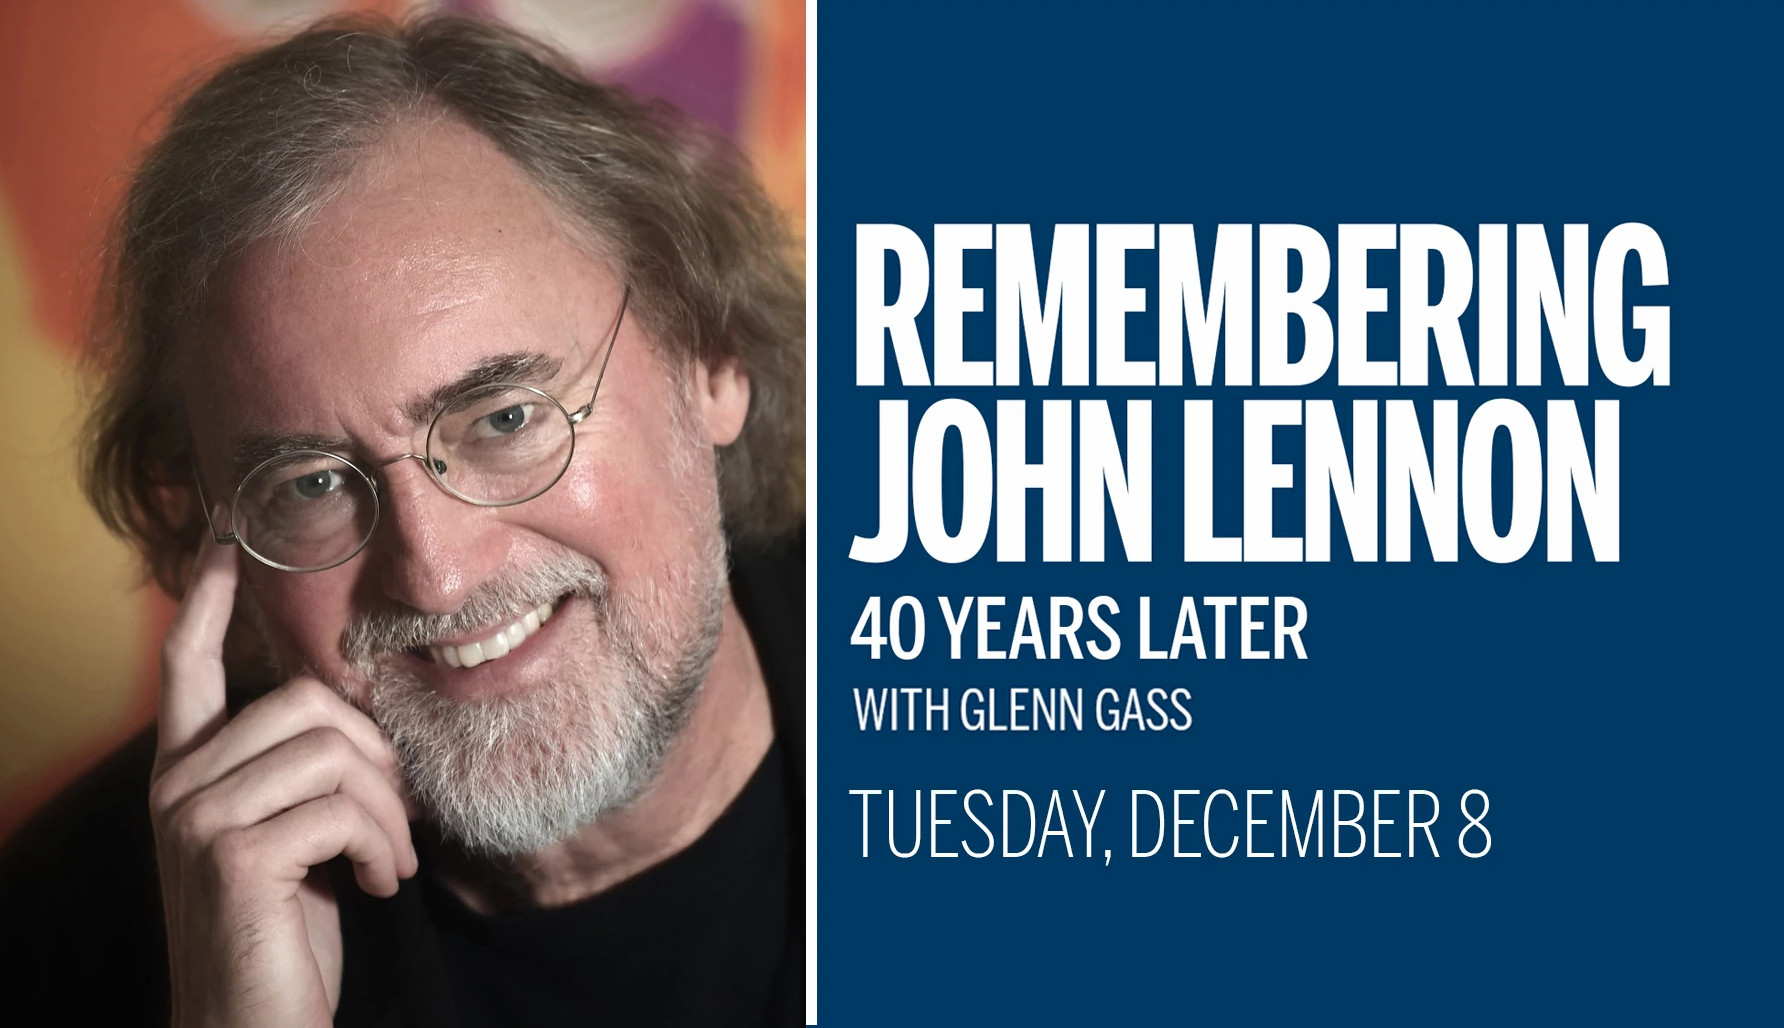 Glenn Gass with text that says 'Remembering John Lennon 40 Years Later'